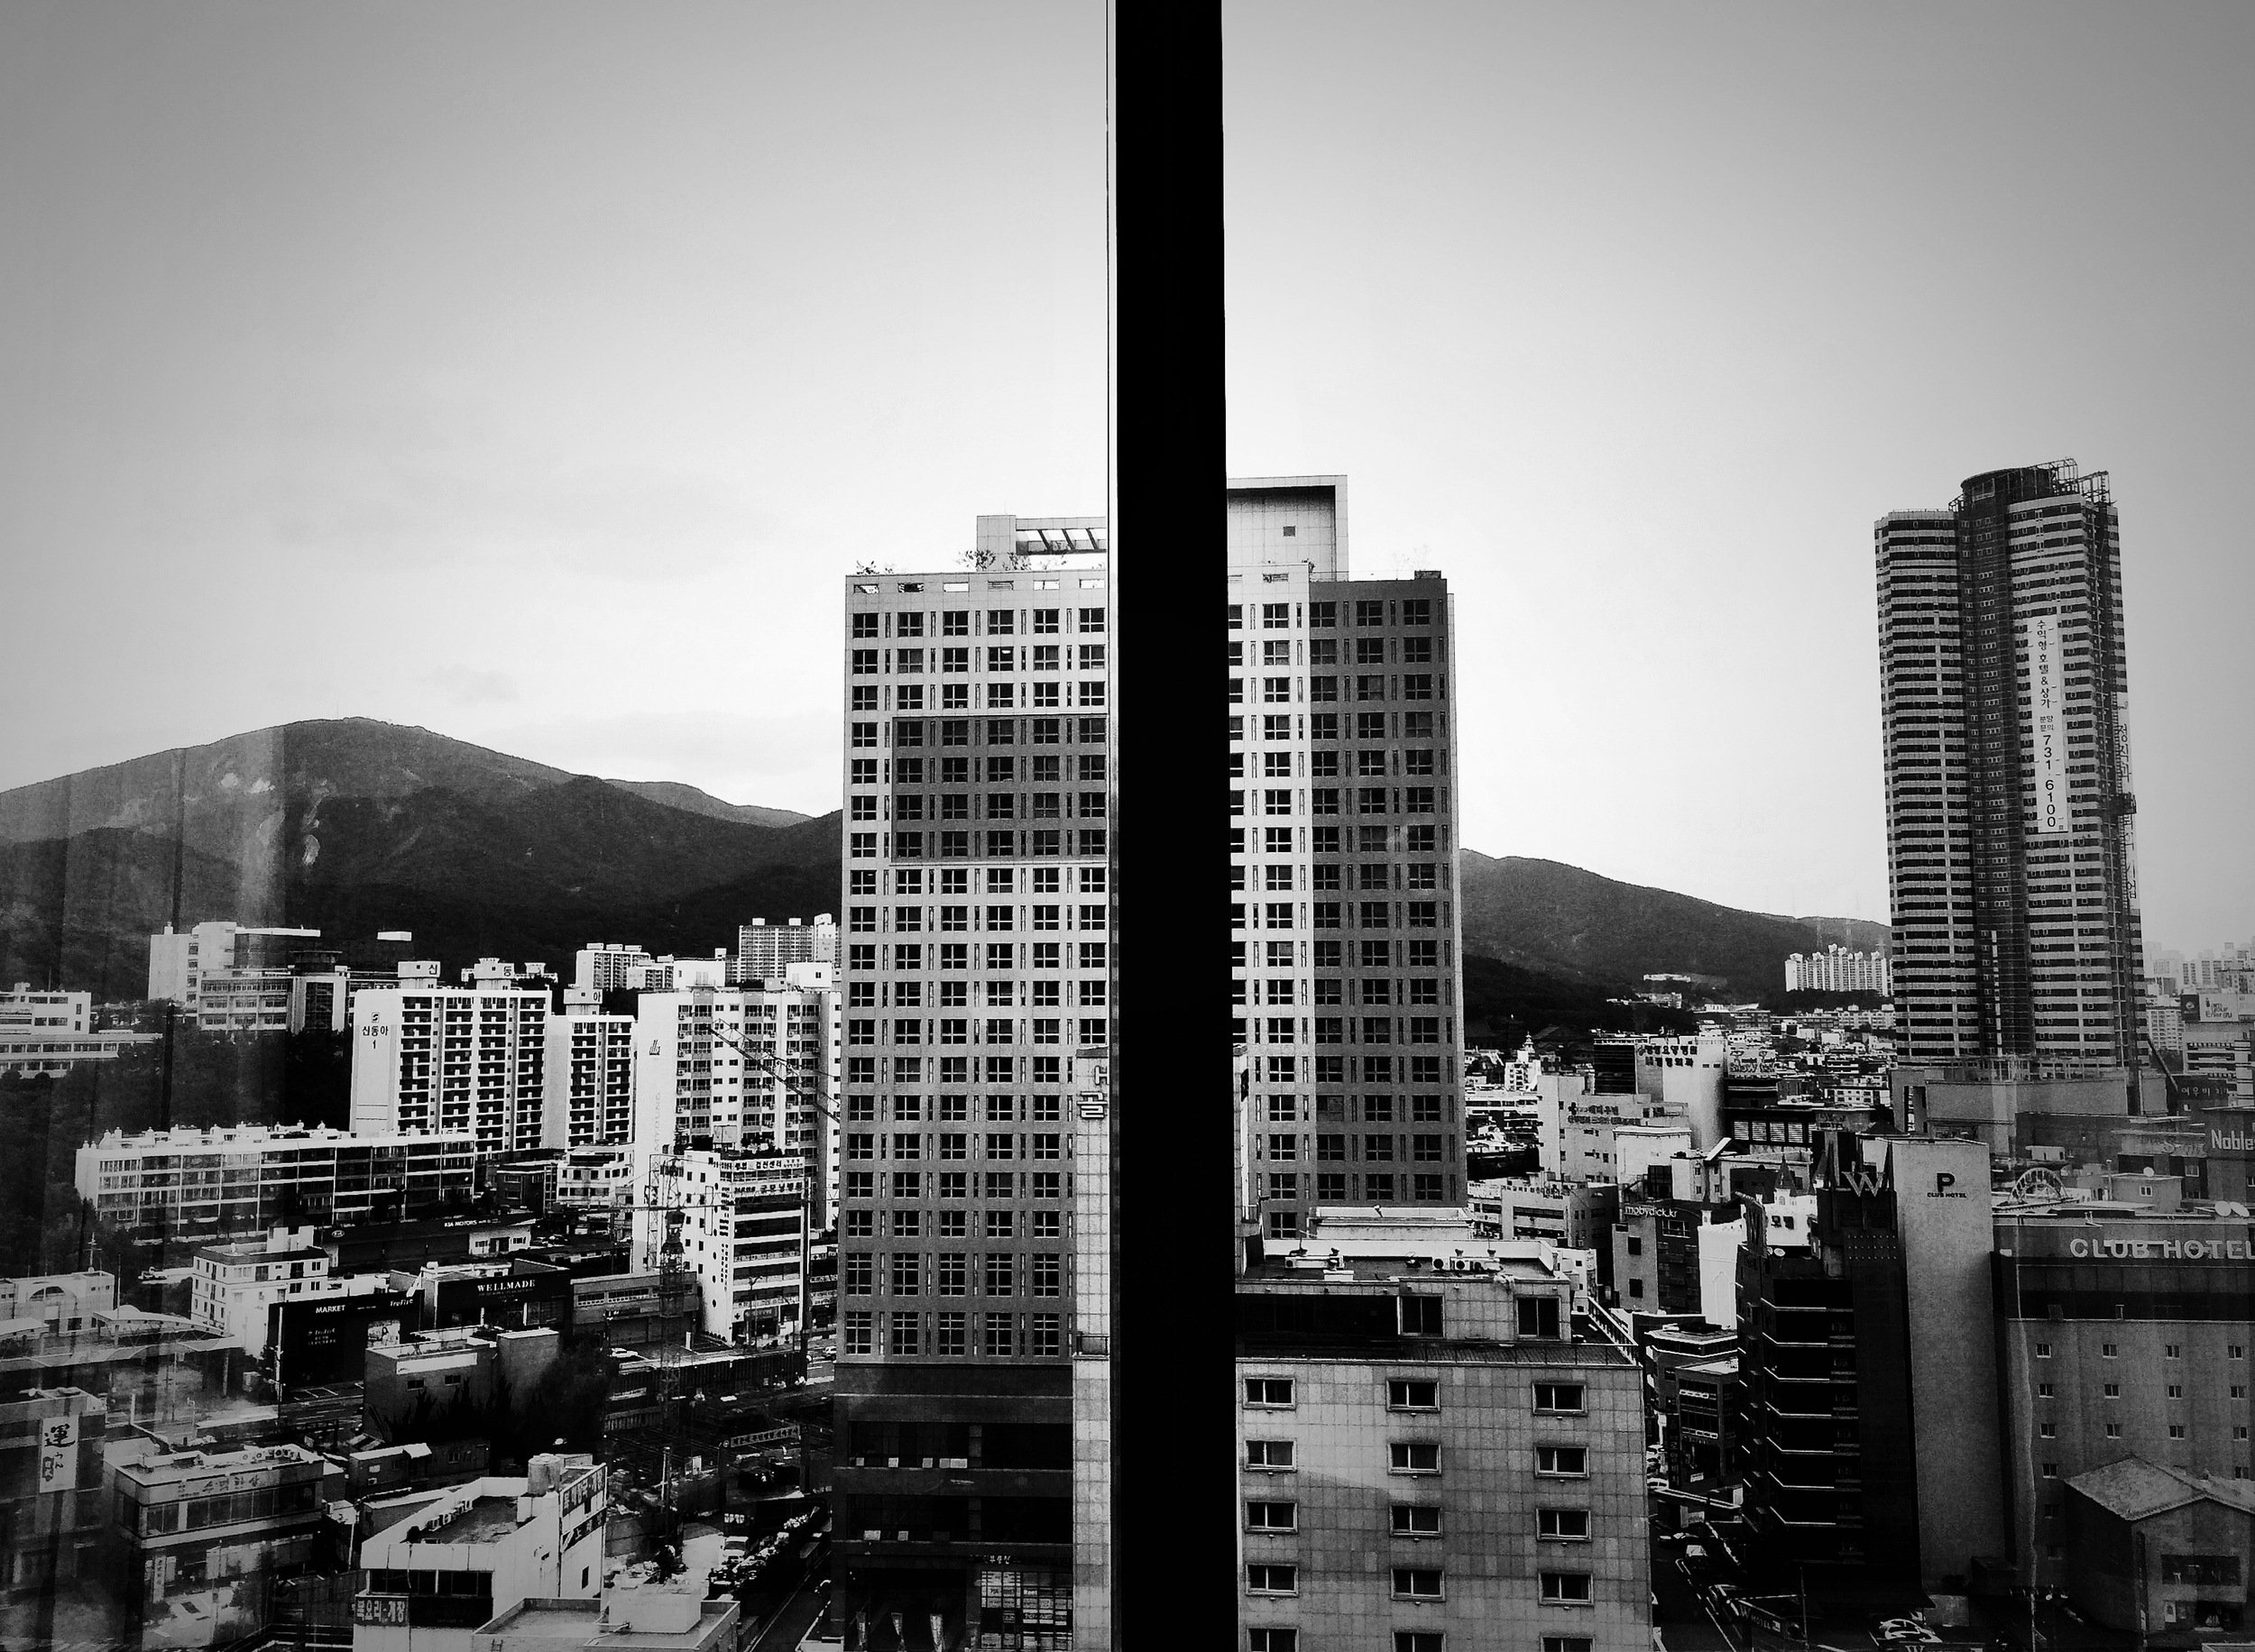 View from my hotel window in Busan, S. Korea.